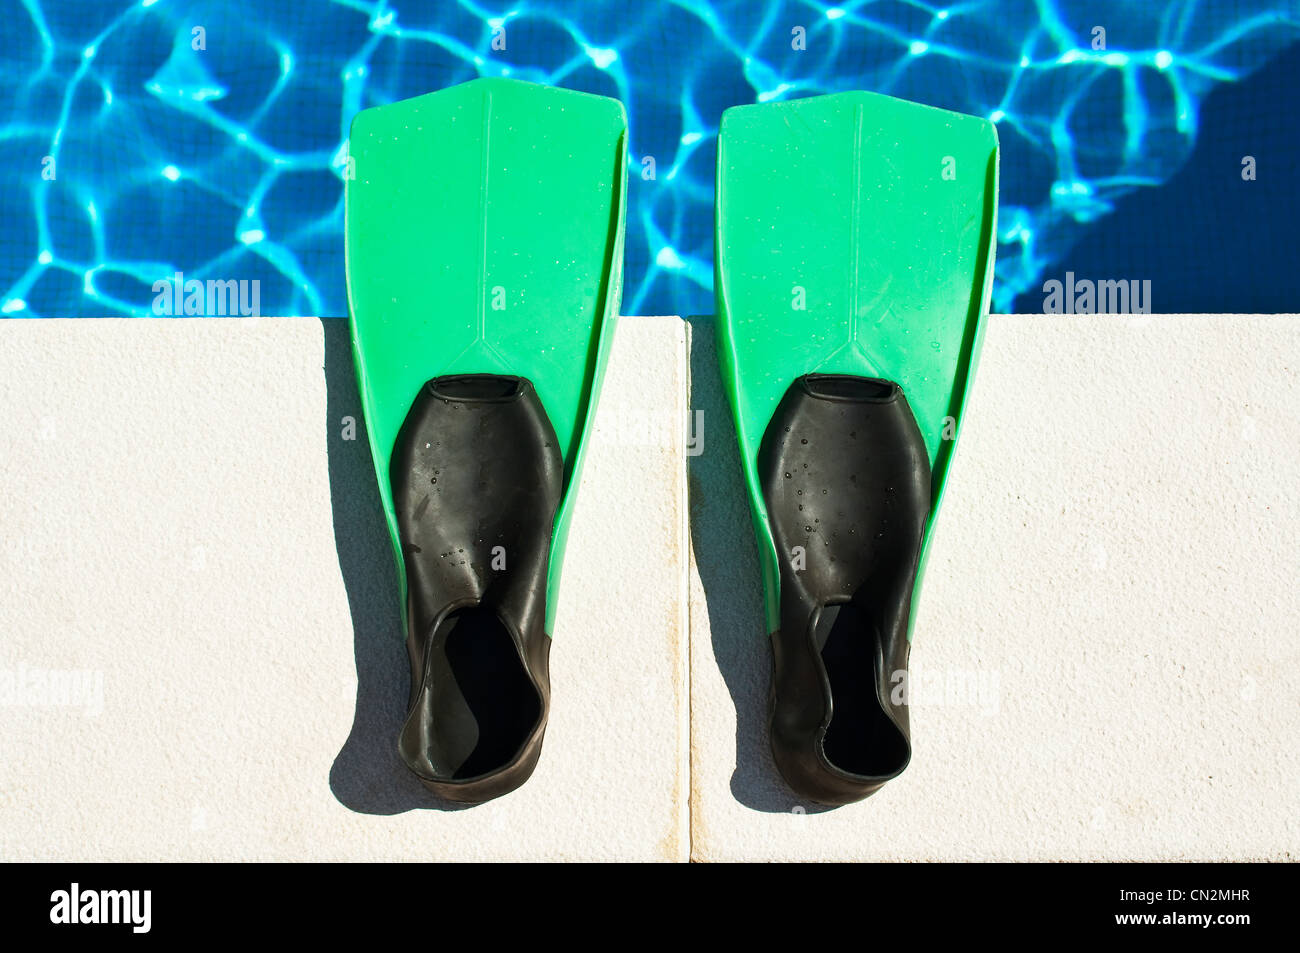 Pair of swimming flippers at poolside - Stock Image